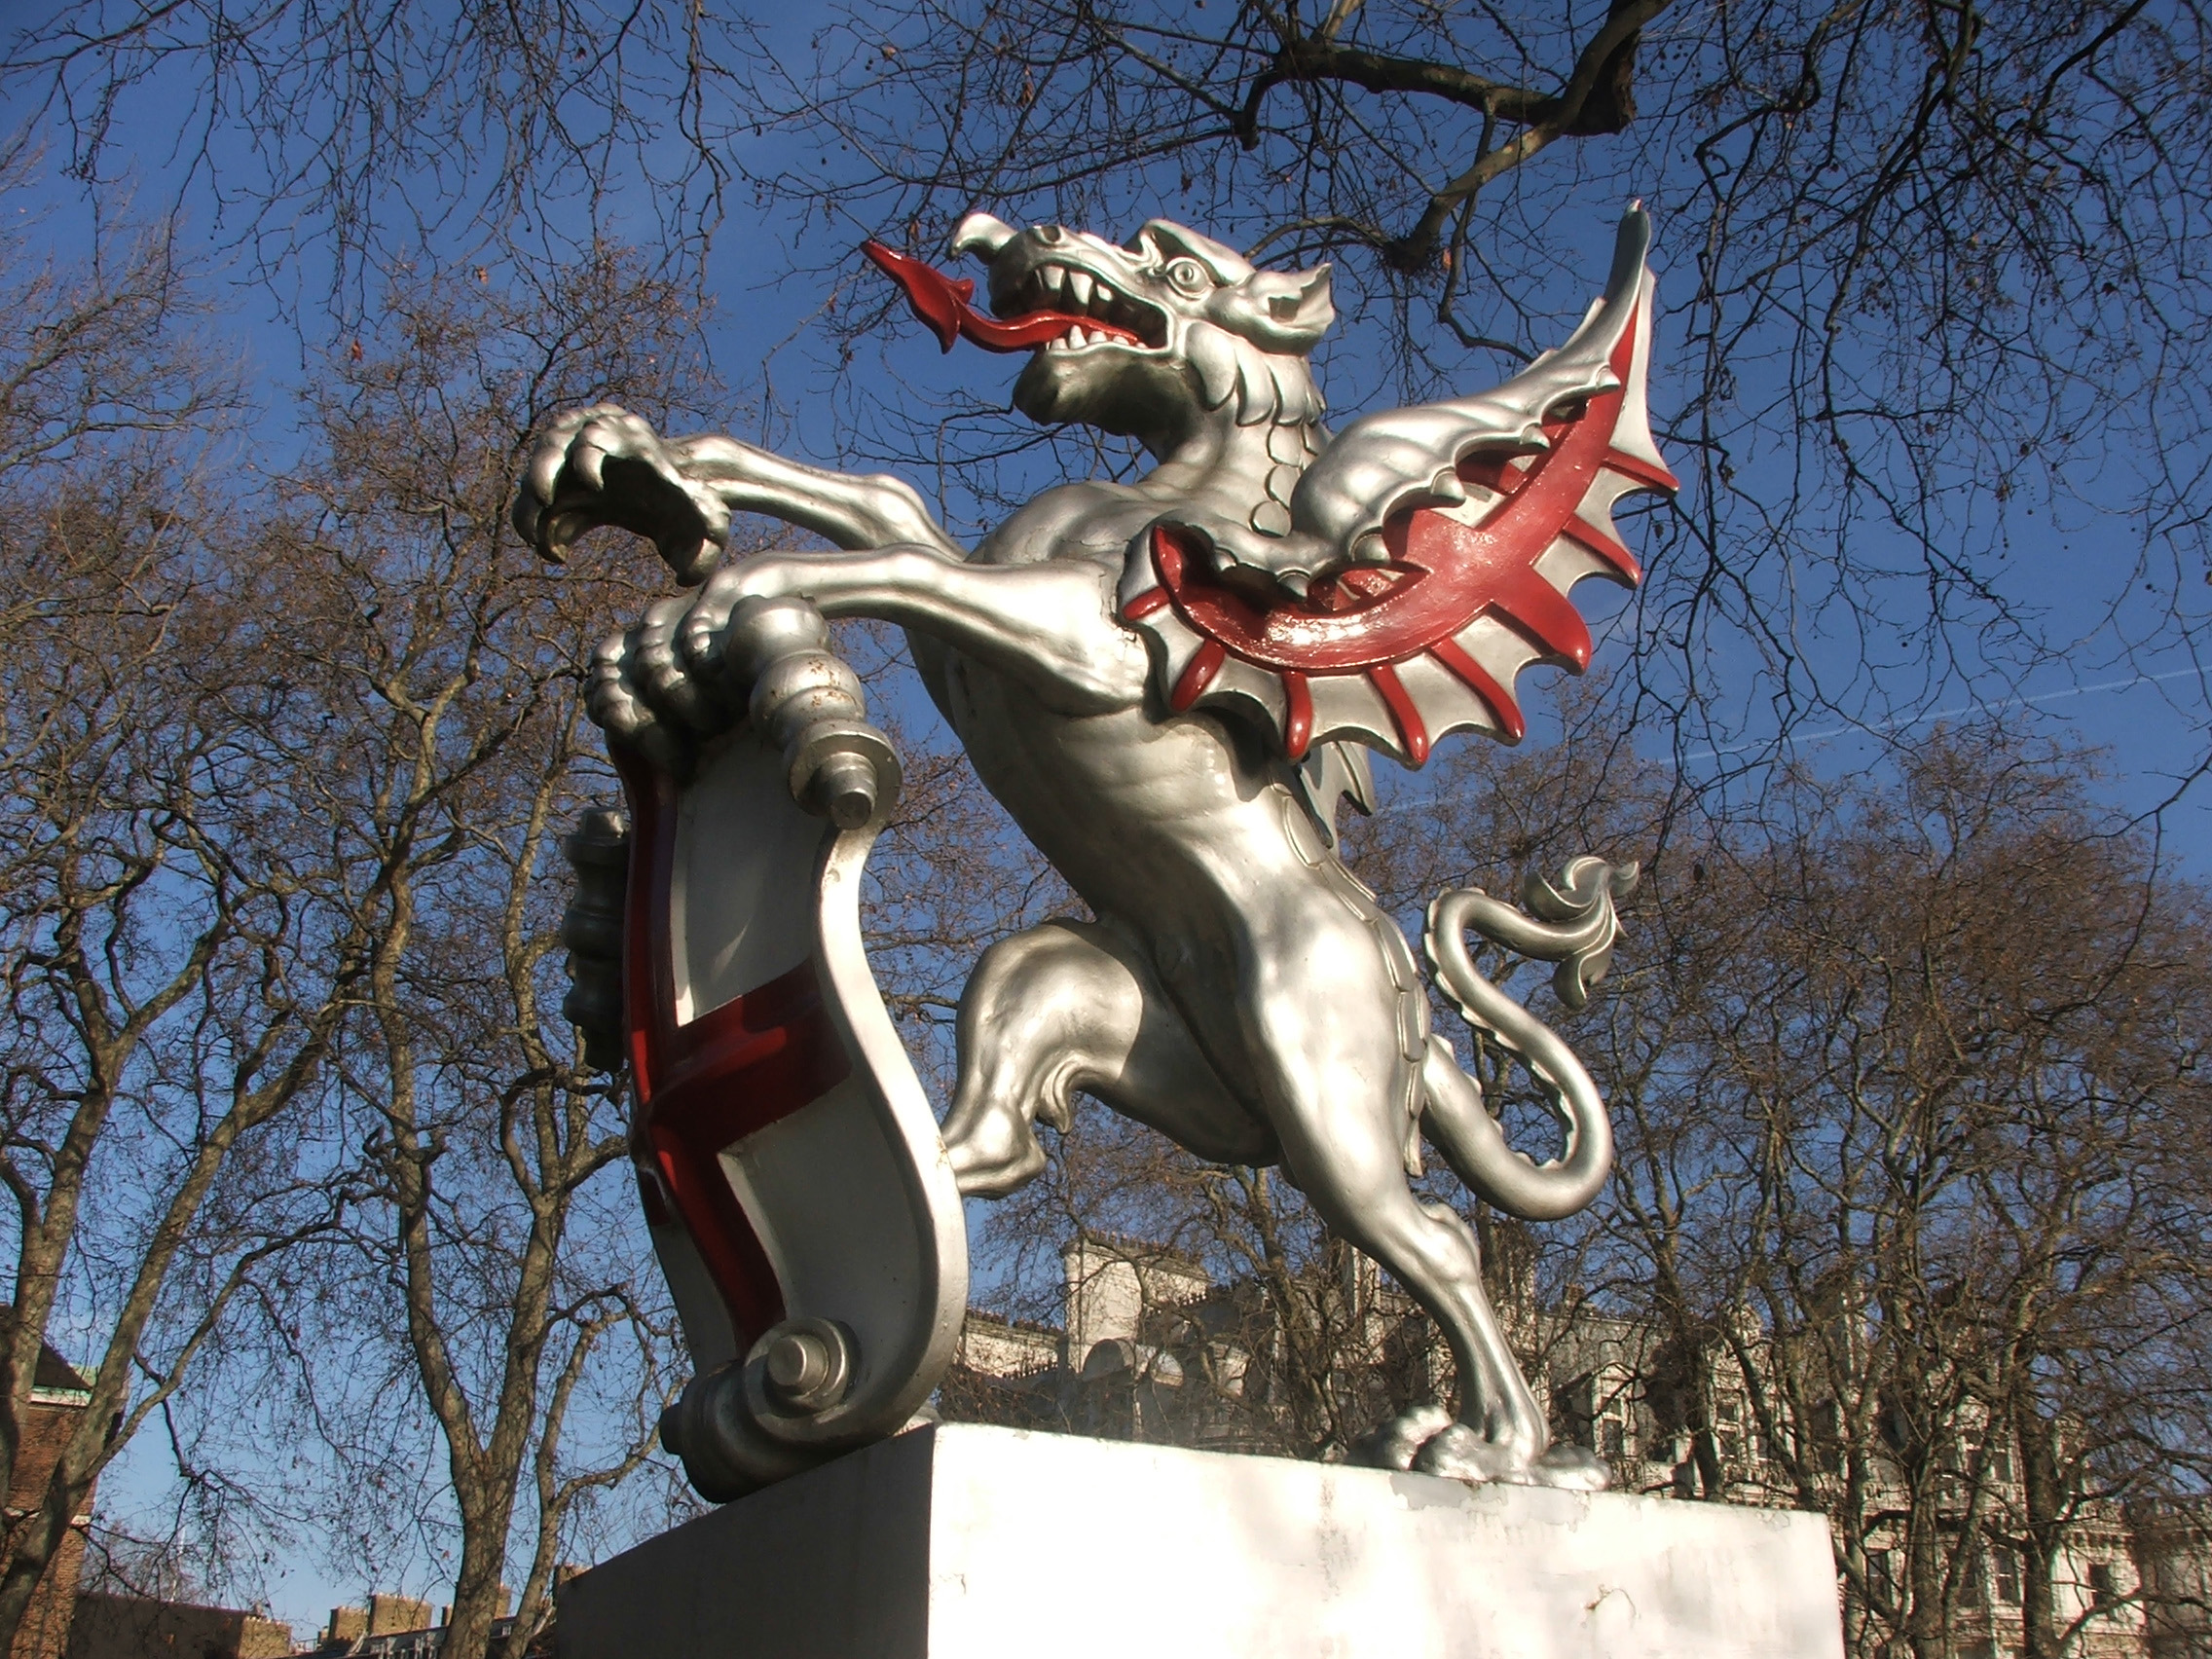 Dragon at the entrance of the City of London